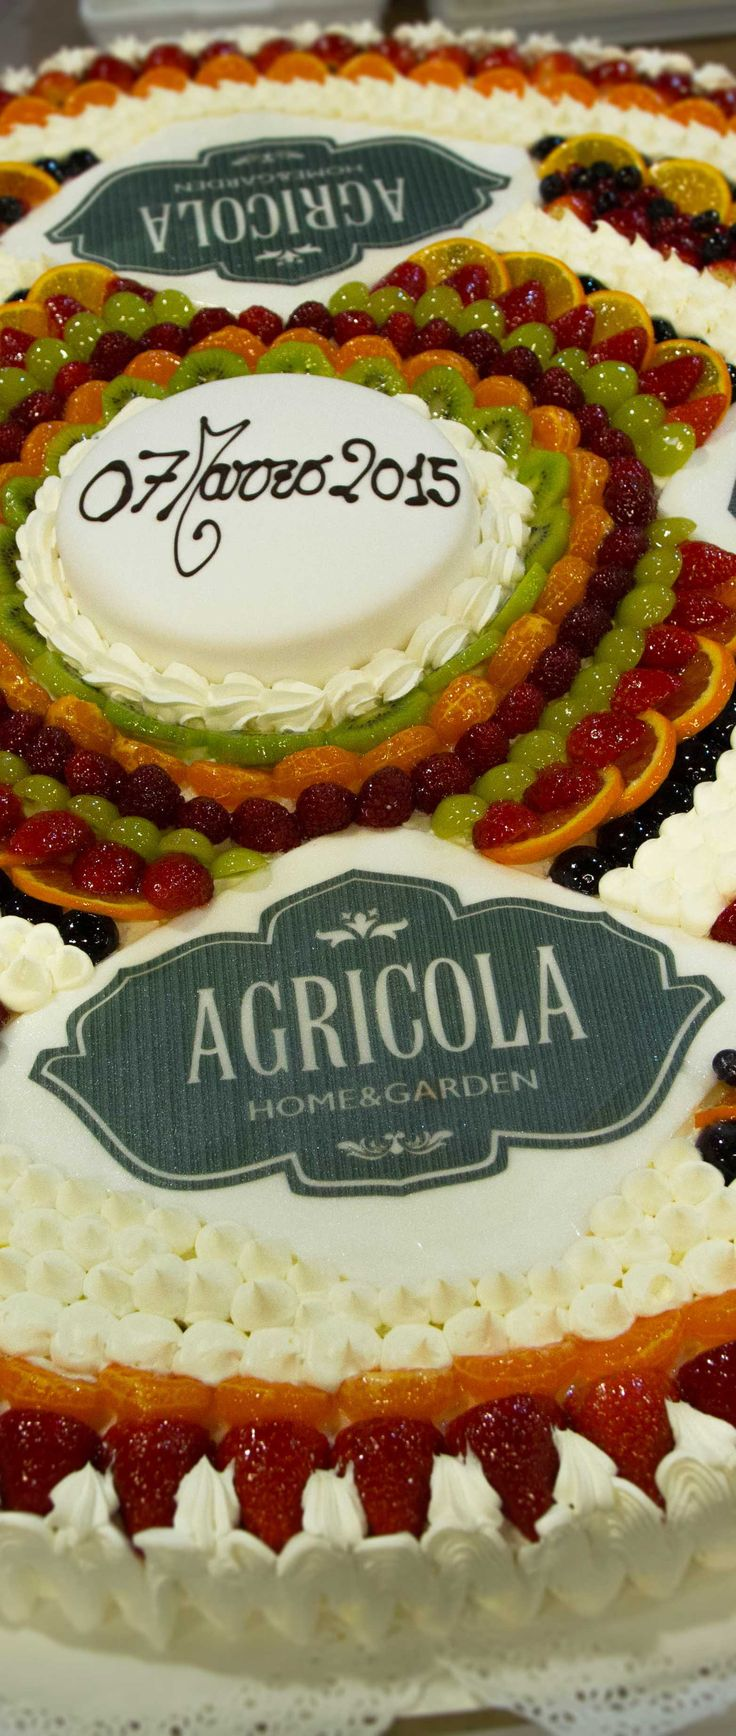 The sweetest way to celebrate us! #agricolabloomingparty